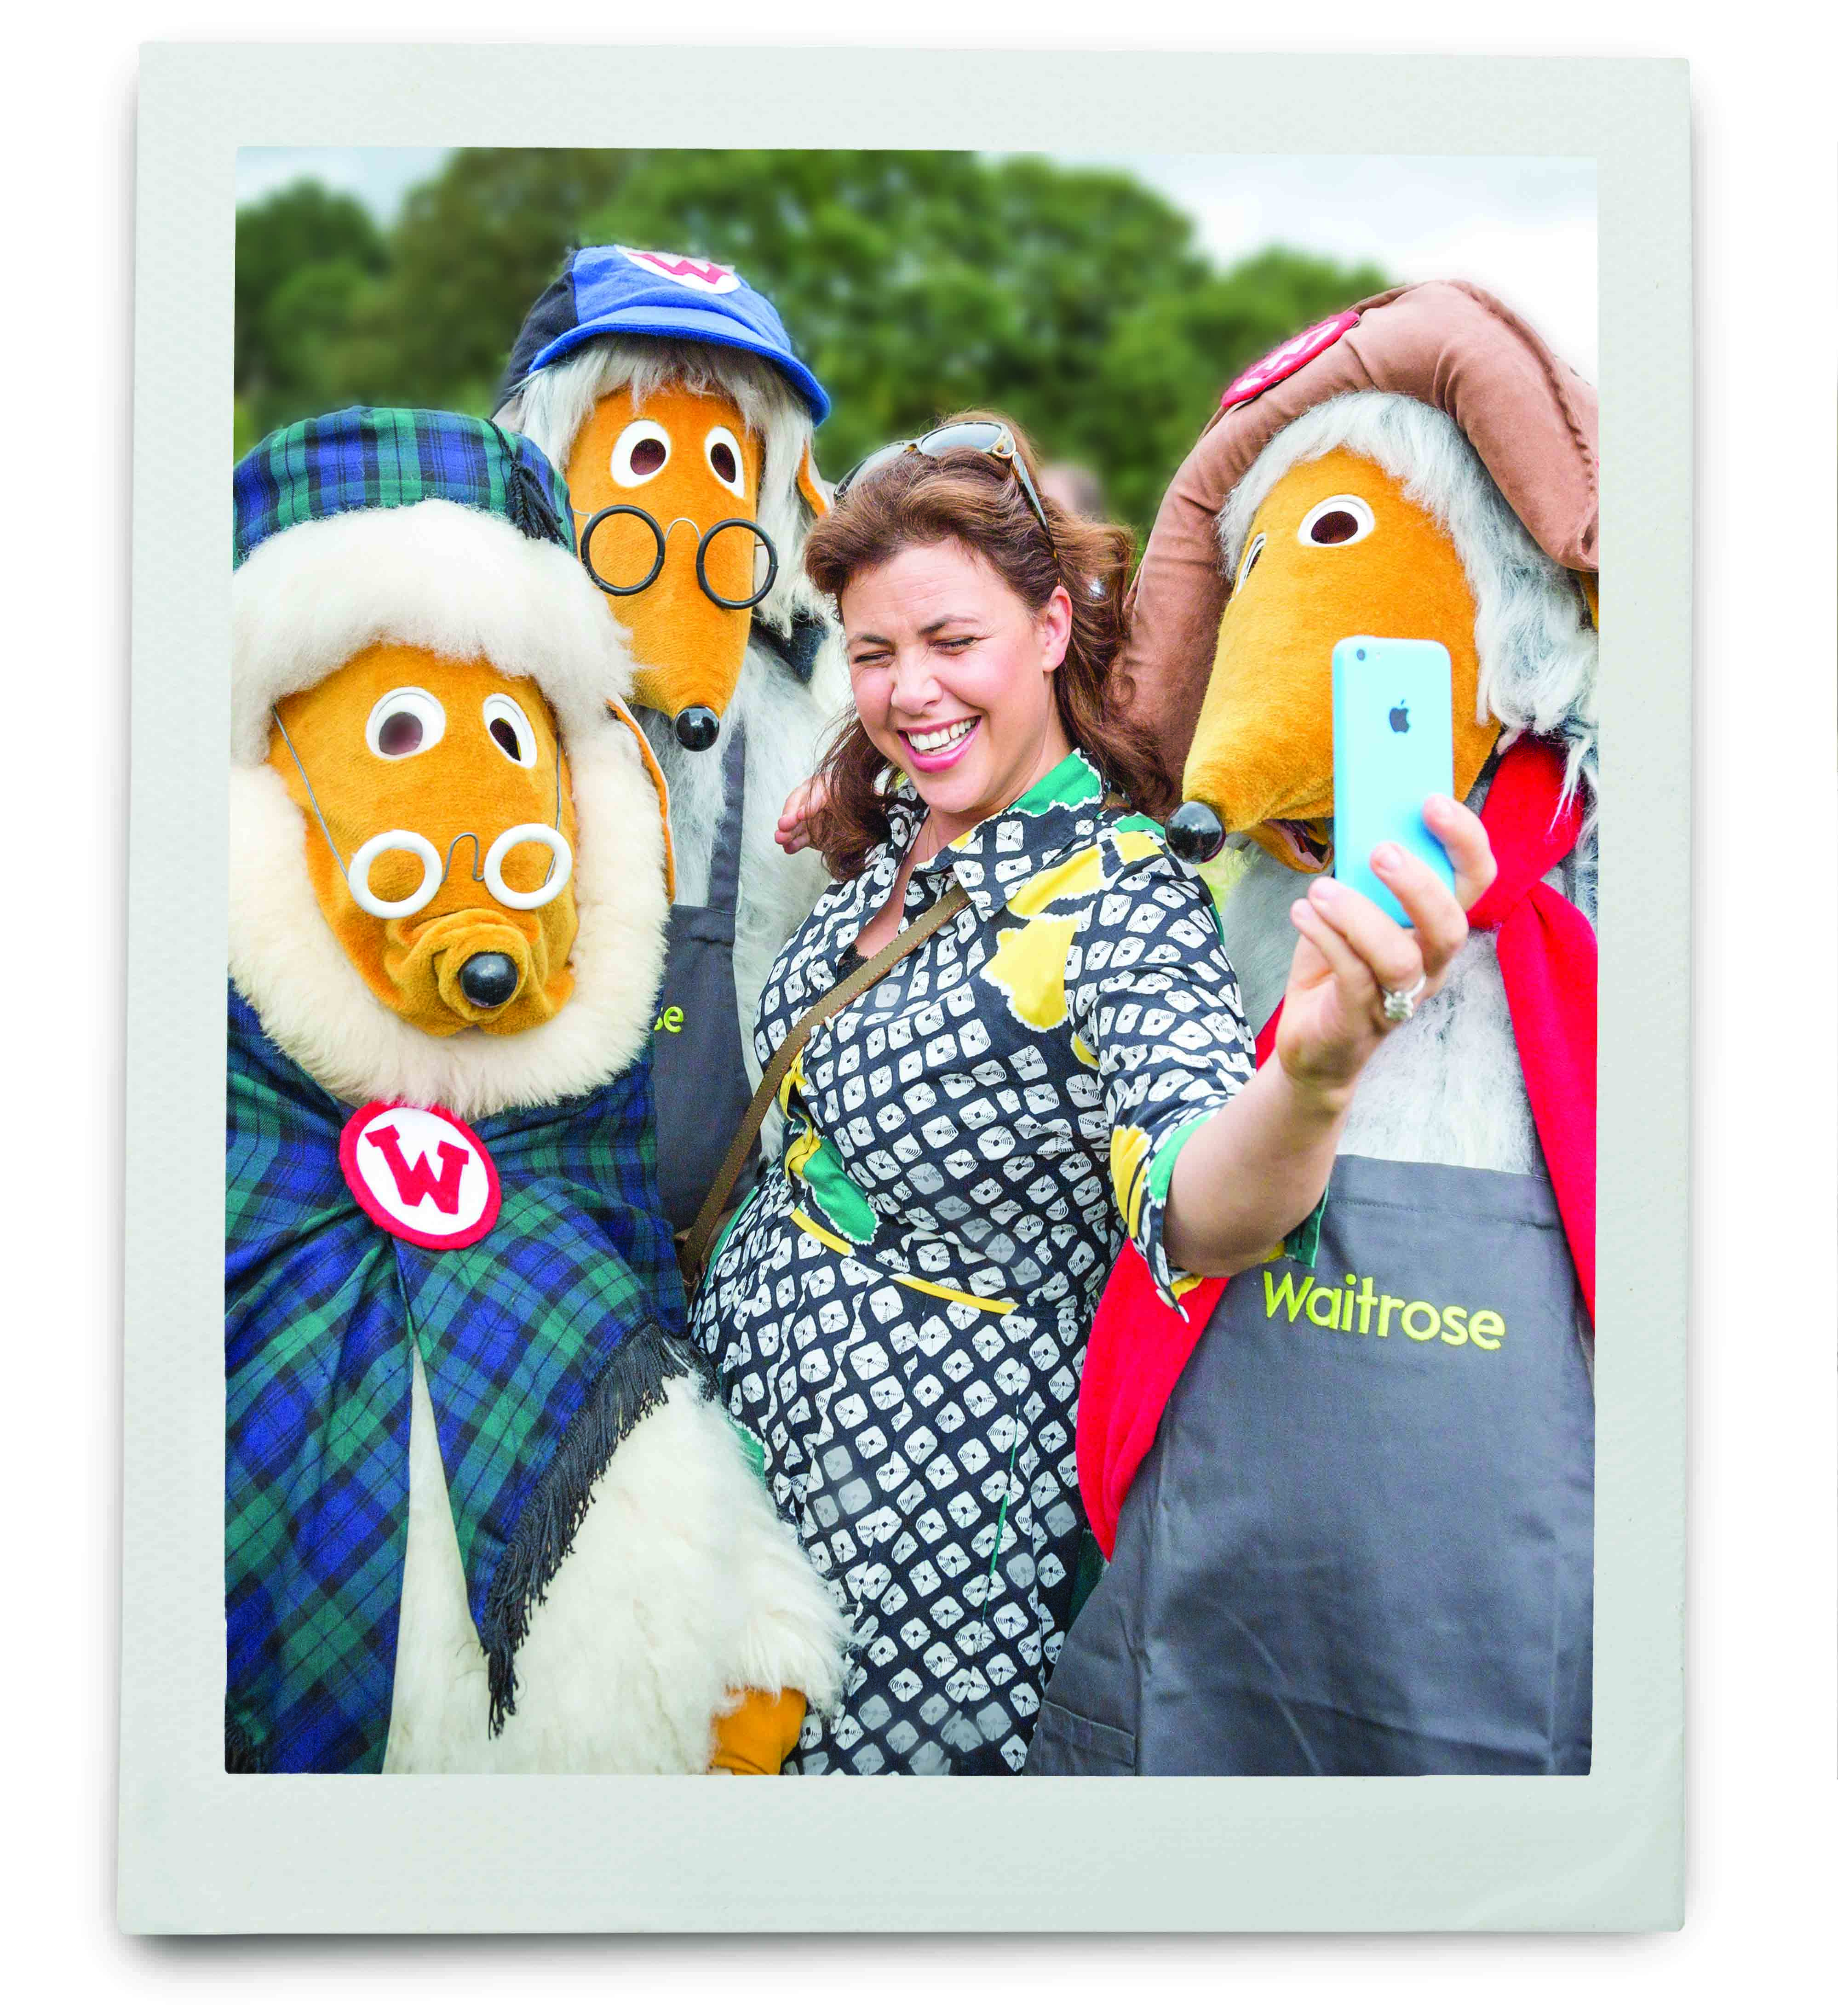 An image of Kirsty Allsop taking a selfie with three people in Wombles costumes